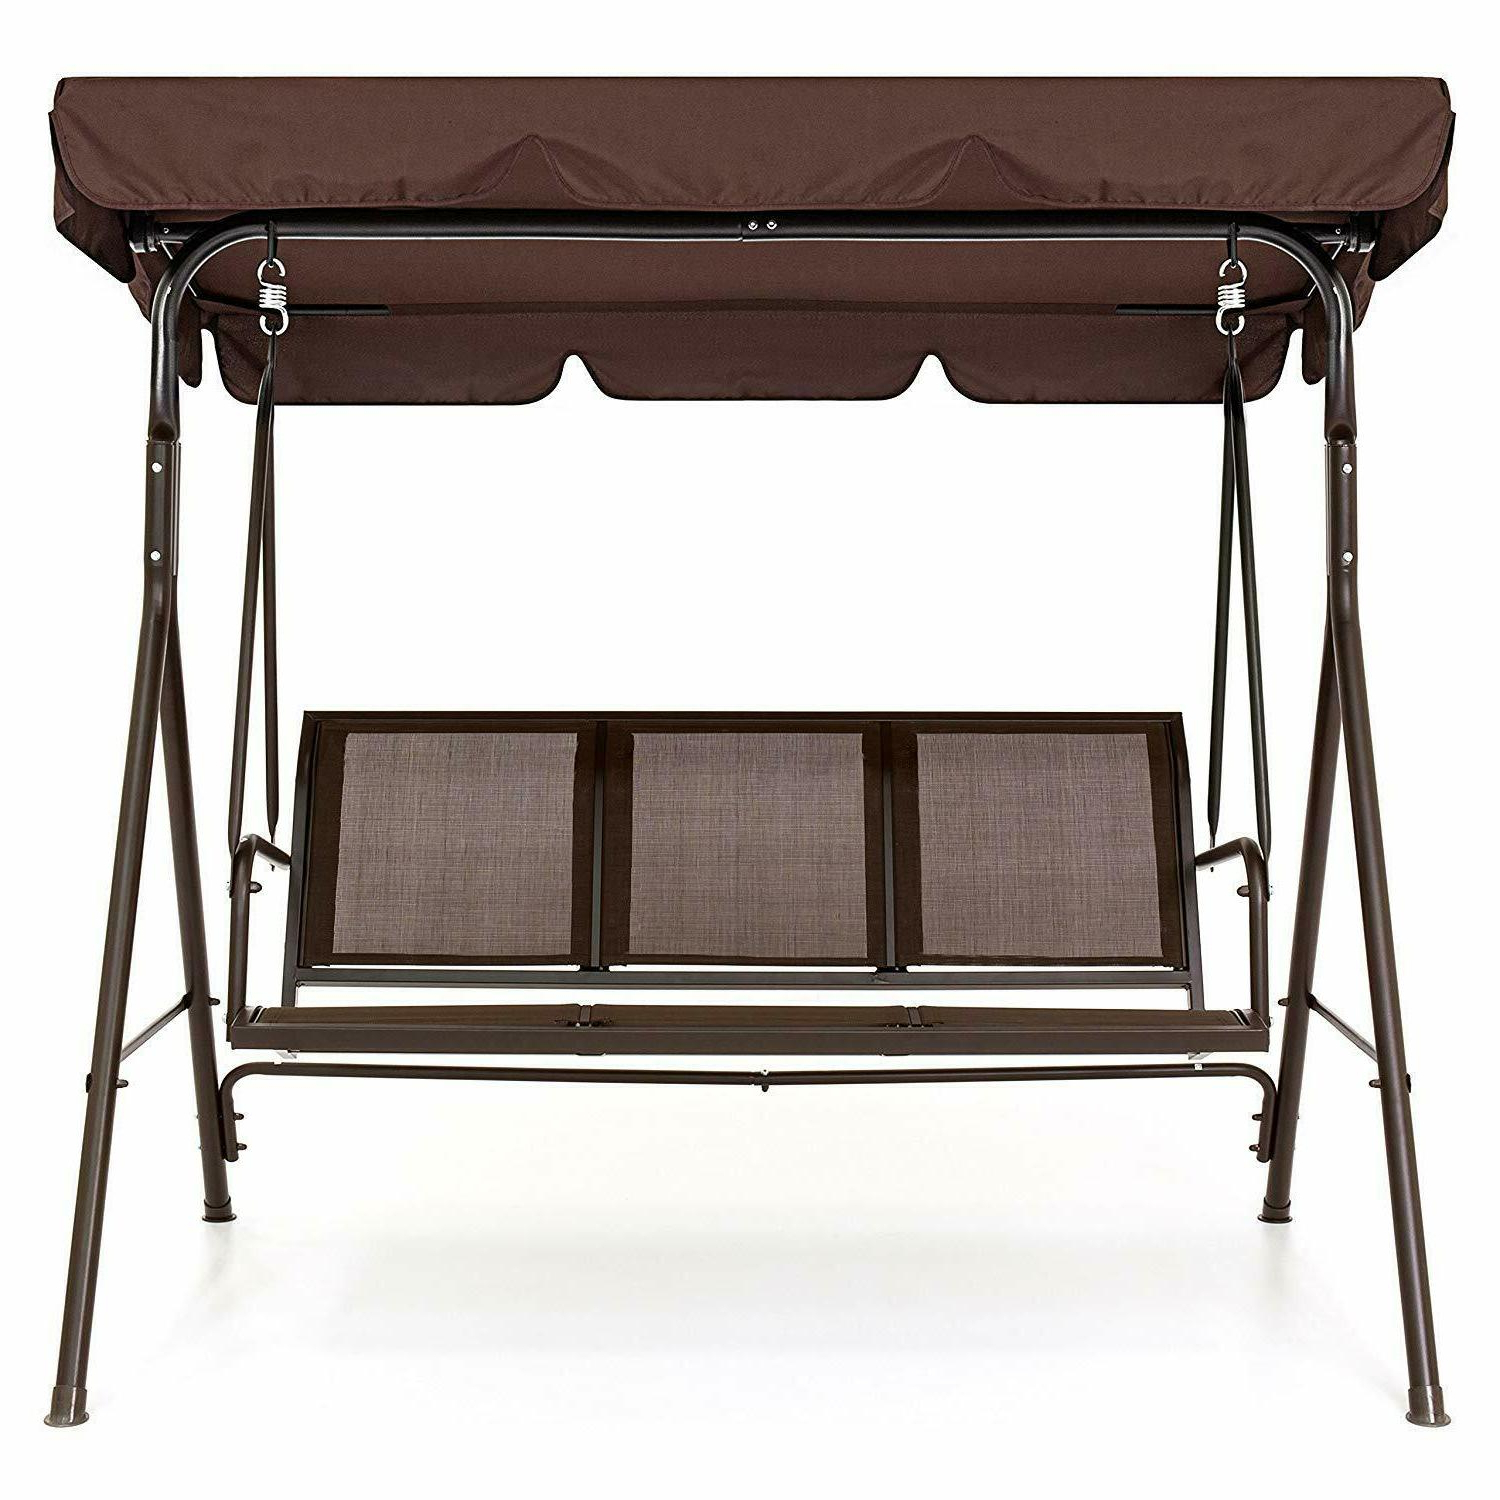 Best Choice Products 2 Person Outdoor Convertible Canopy Porch Swing – Brown Inside Recent Porch Swings With Canopy (Gallery 16 of 30)